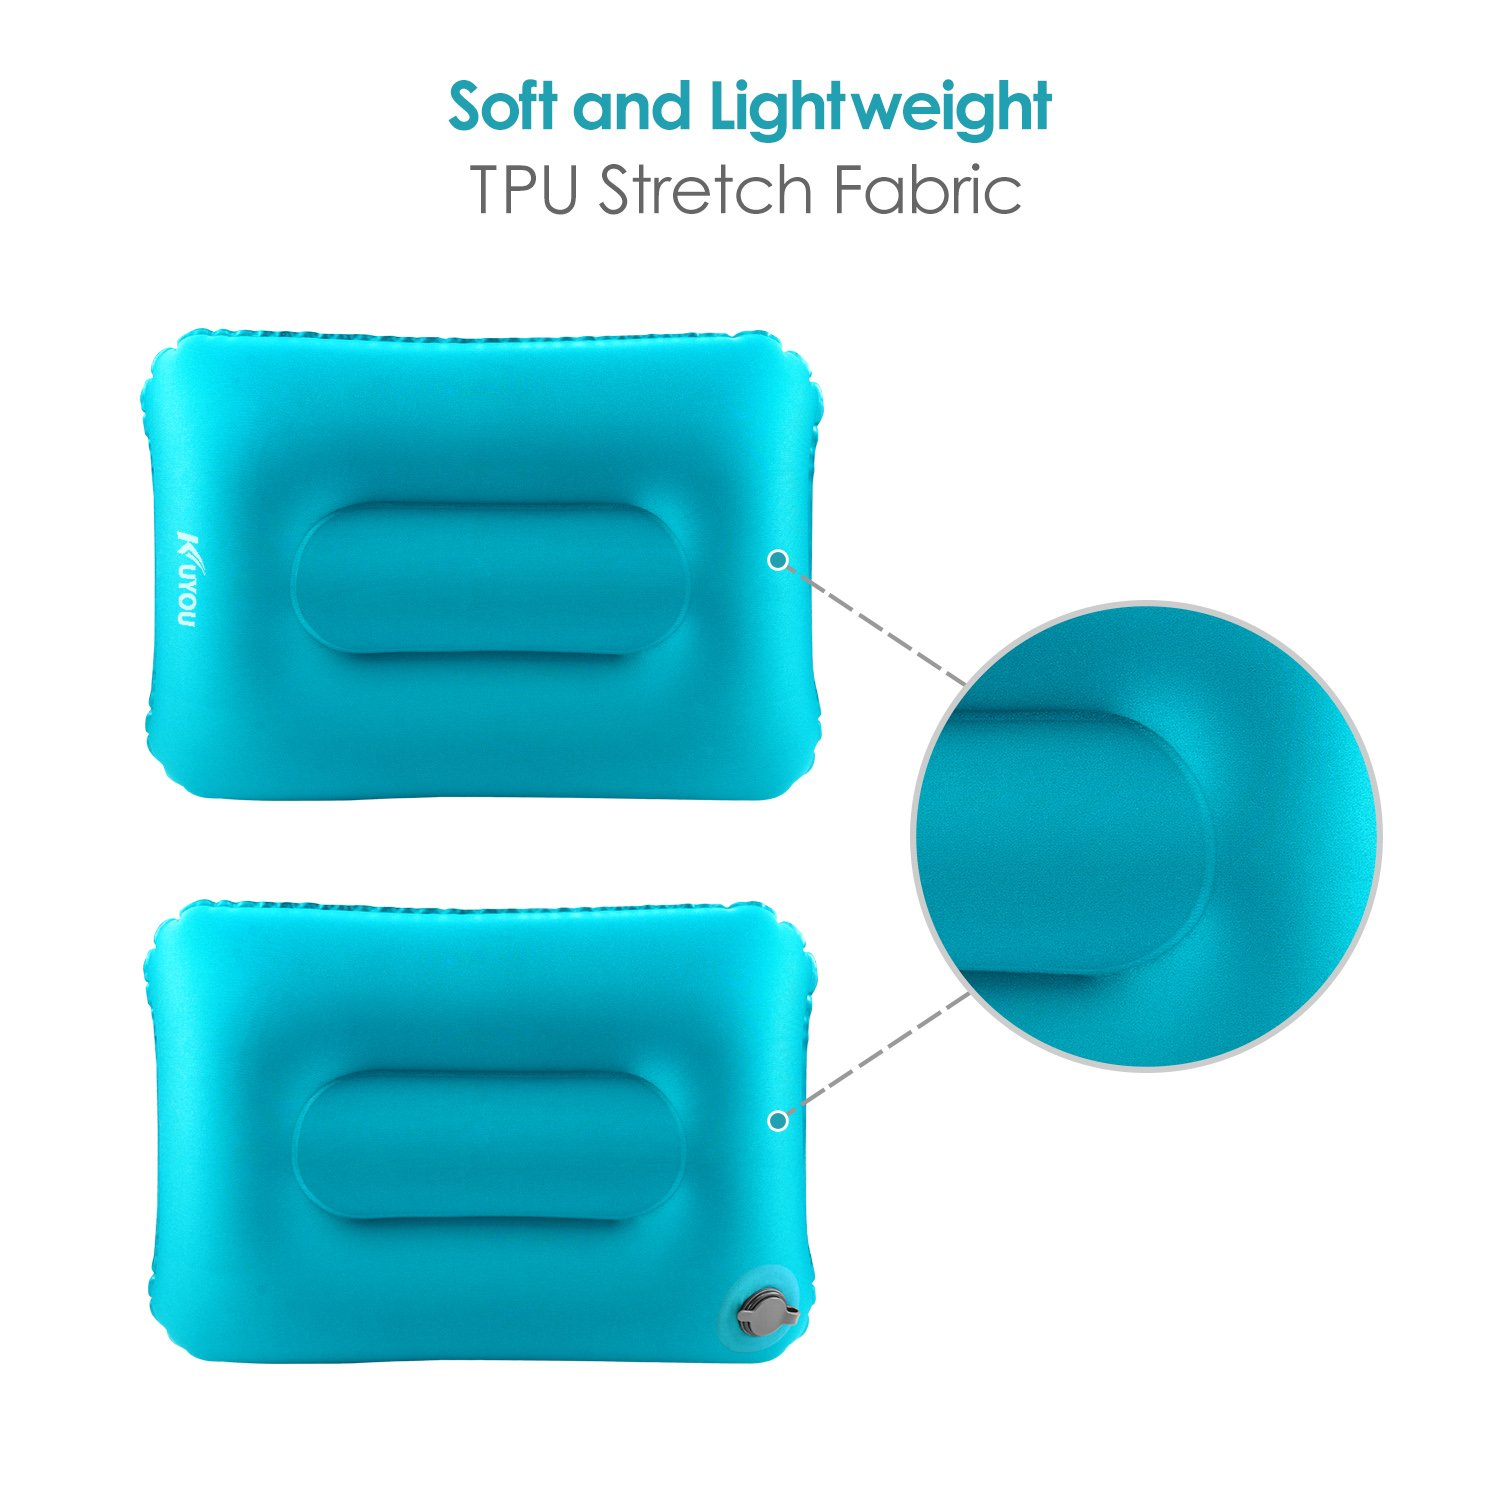 KUYOU Protable Inflatable Camping Pillow Backpacking Sleeping Pillow Compressible Ultralight Ergonomic Air Pillow for Neck and Lumbar